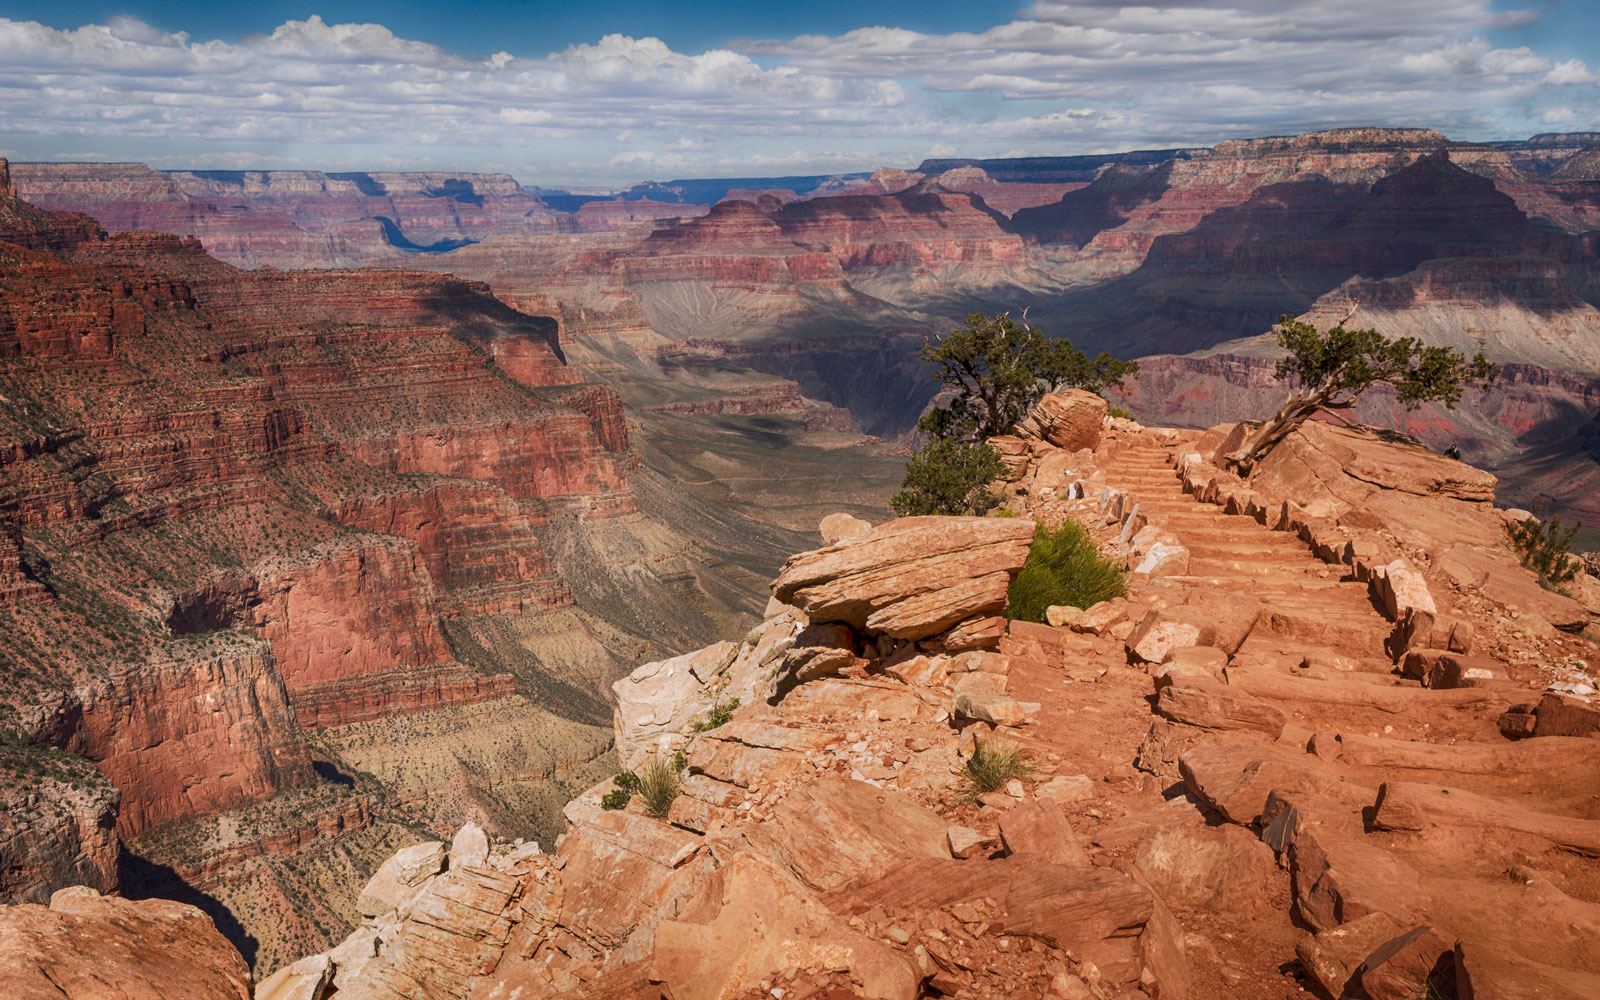 British Tourist, 55, Dies in Arizona Skydiving Crash Near the Grand Canyon